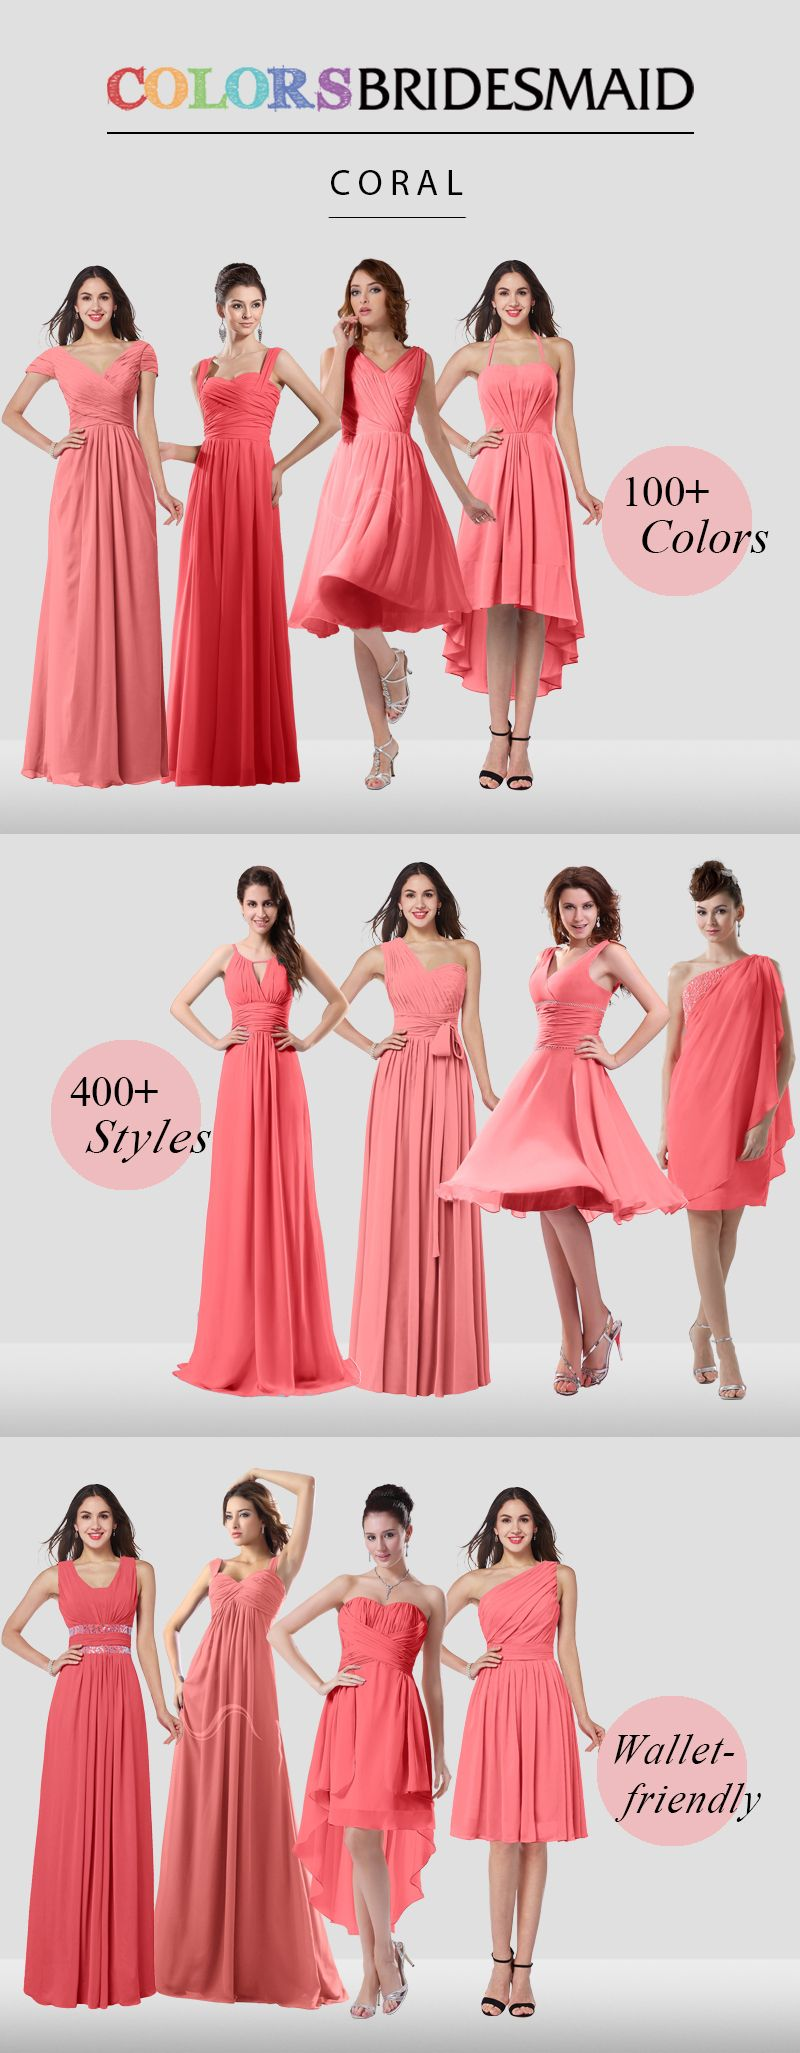 Coral bridesmaid dresses are all custom made to flatter your figure ...